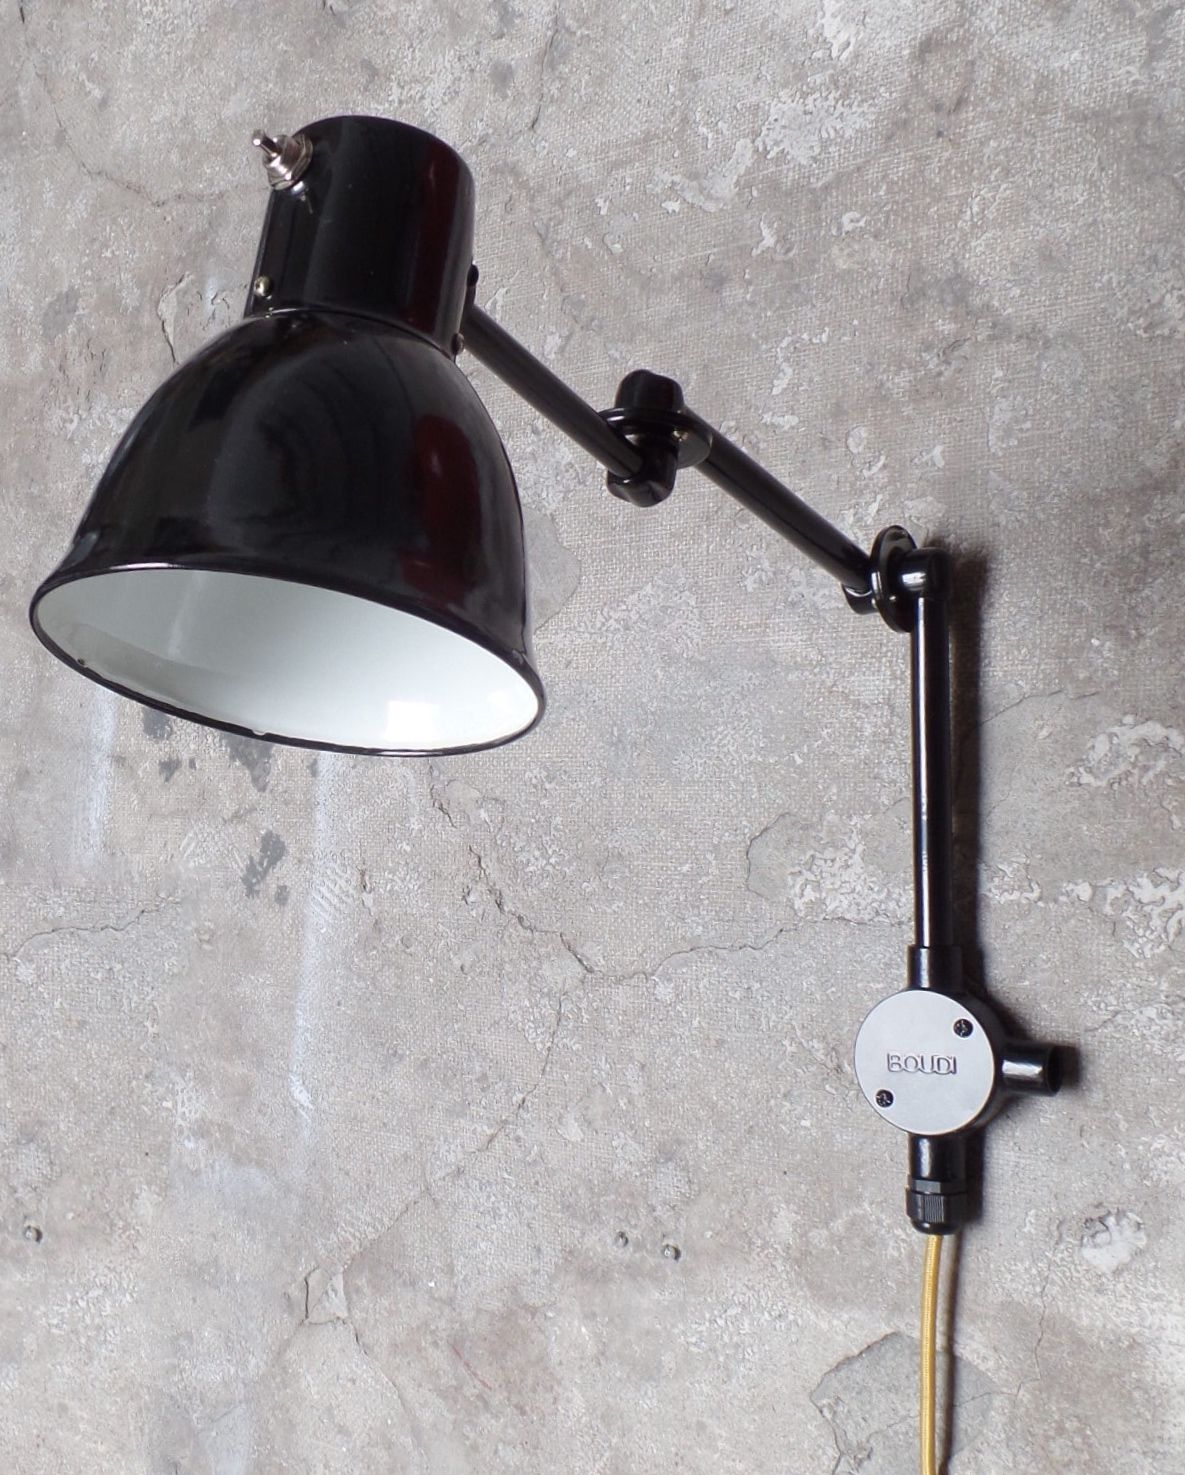 Boudi Mid Century Industrial Style Wall Sconce Lamp In Black Www Boudi Co Nz Interer Dom